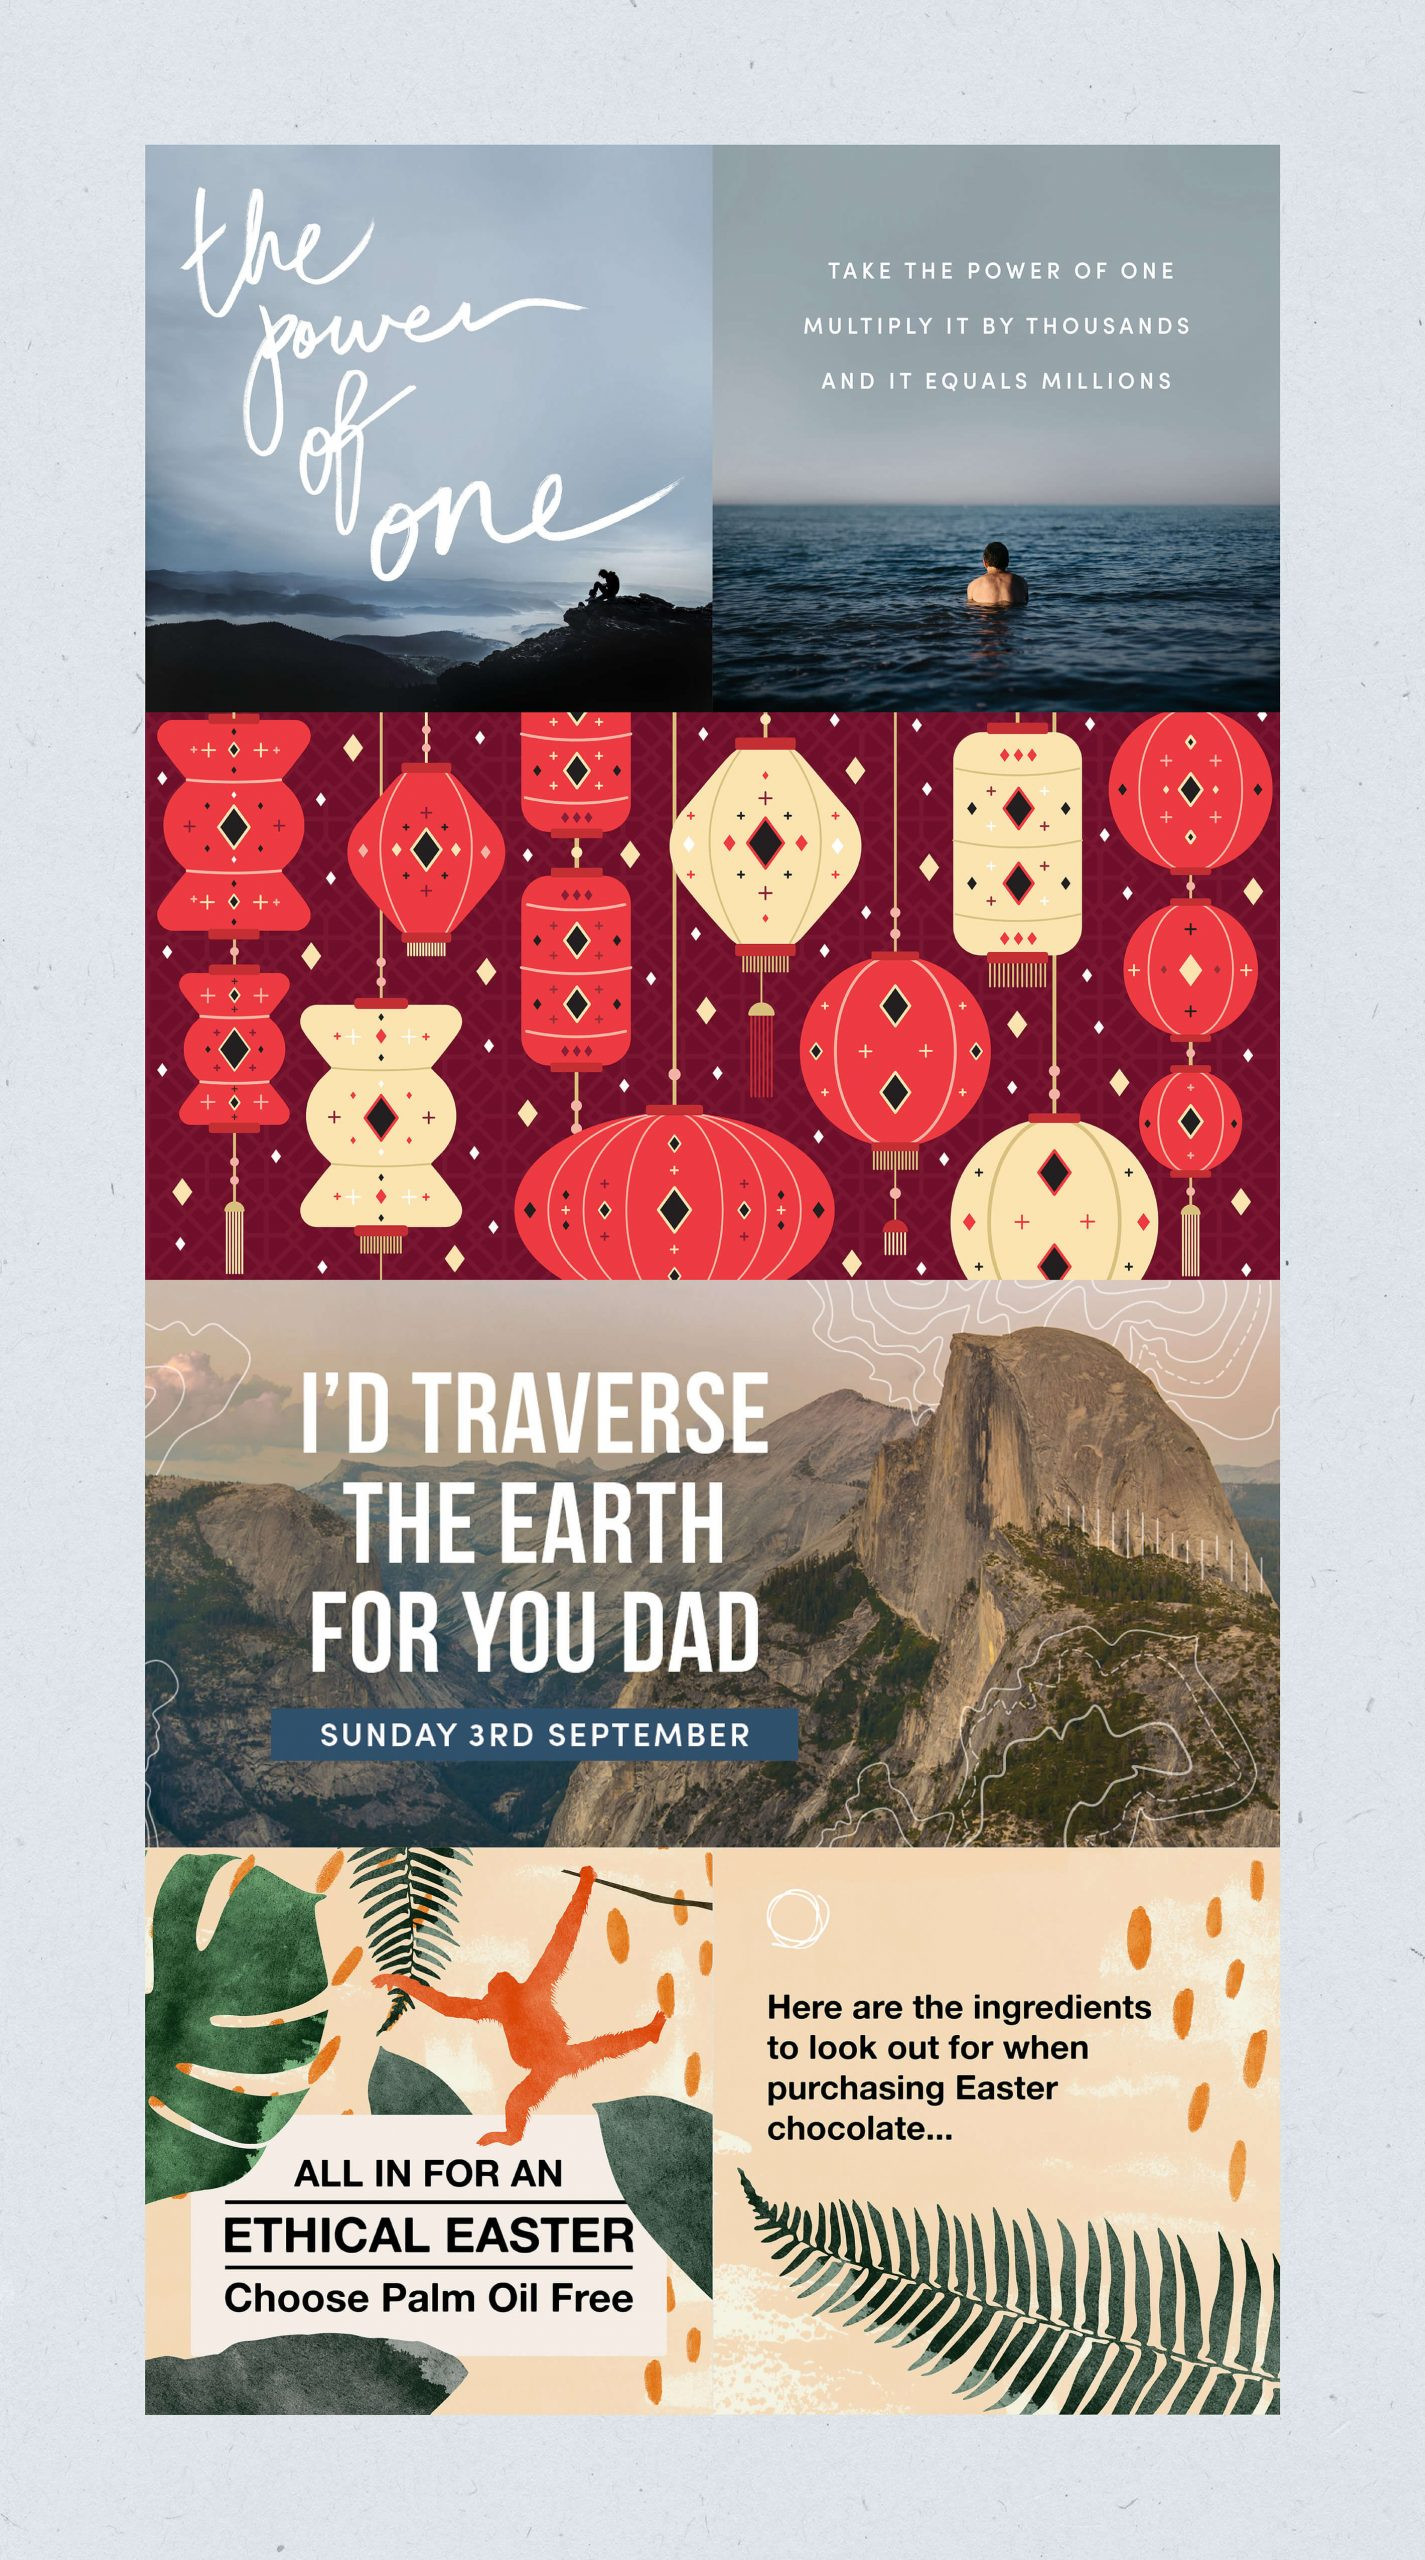 selection of biome artwork for various social media campaigns such as #thepowerofone, lunar new year, fathers day and palm oil free easter